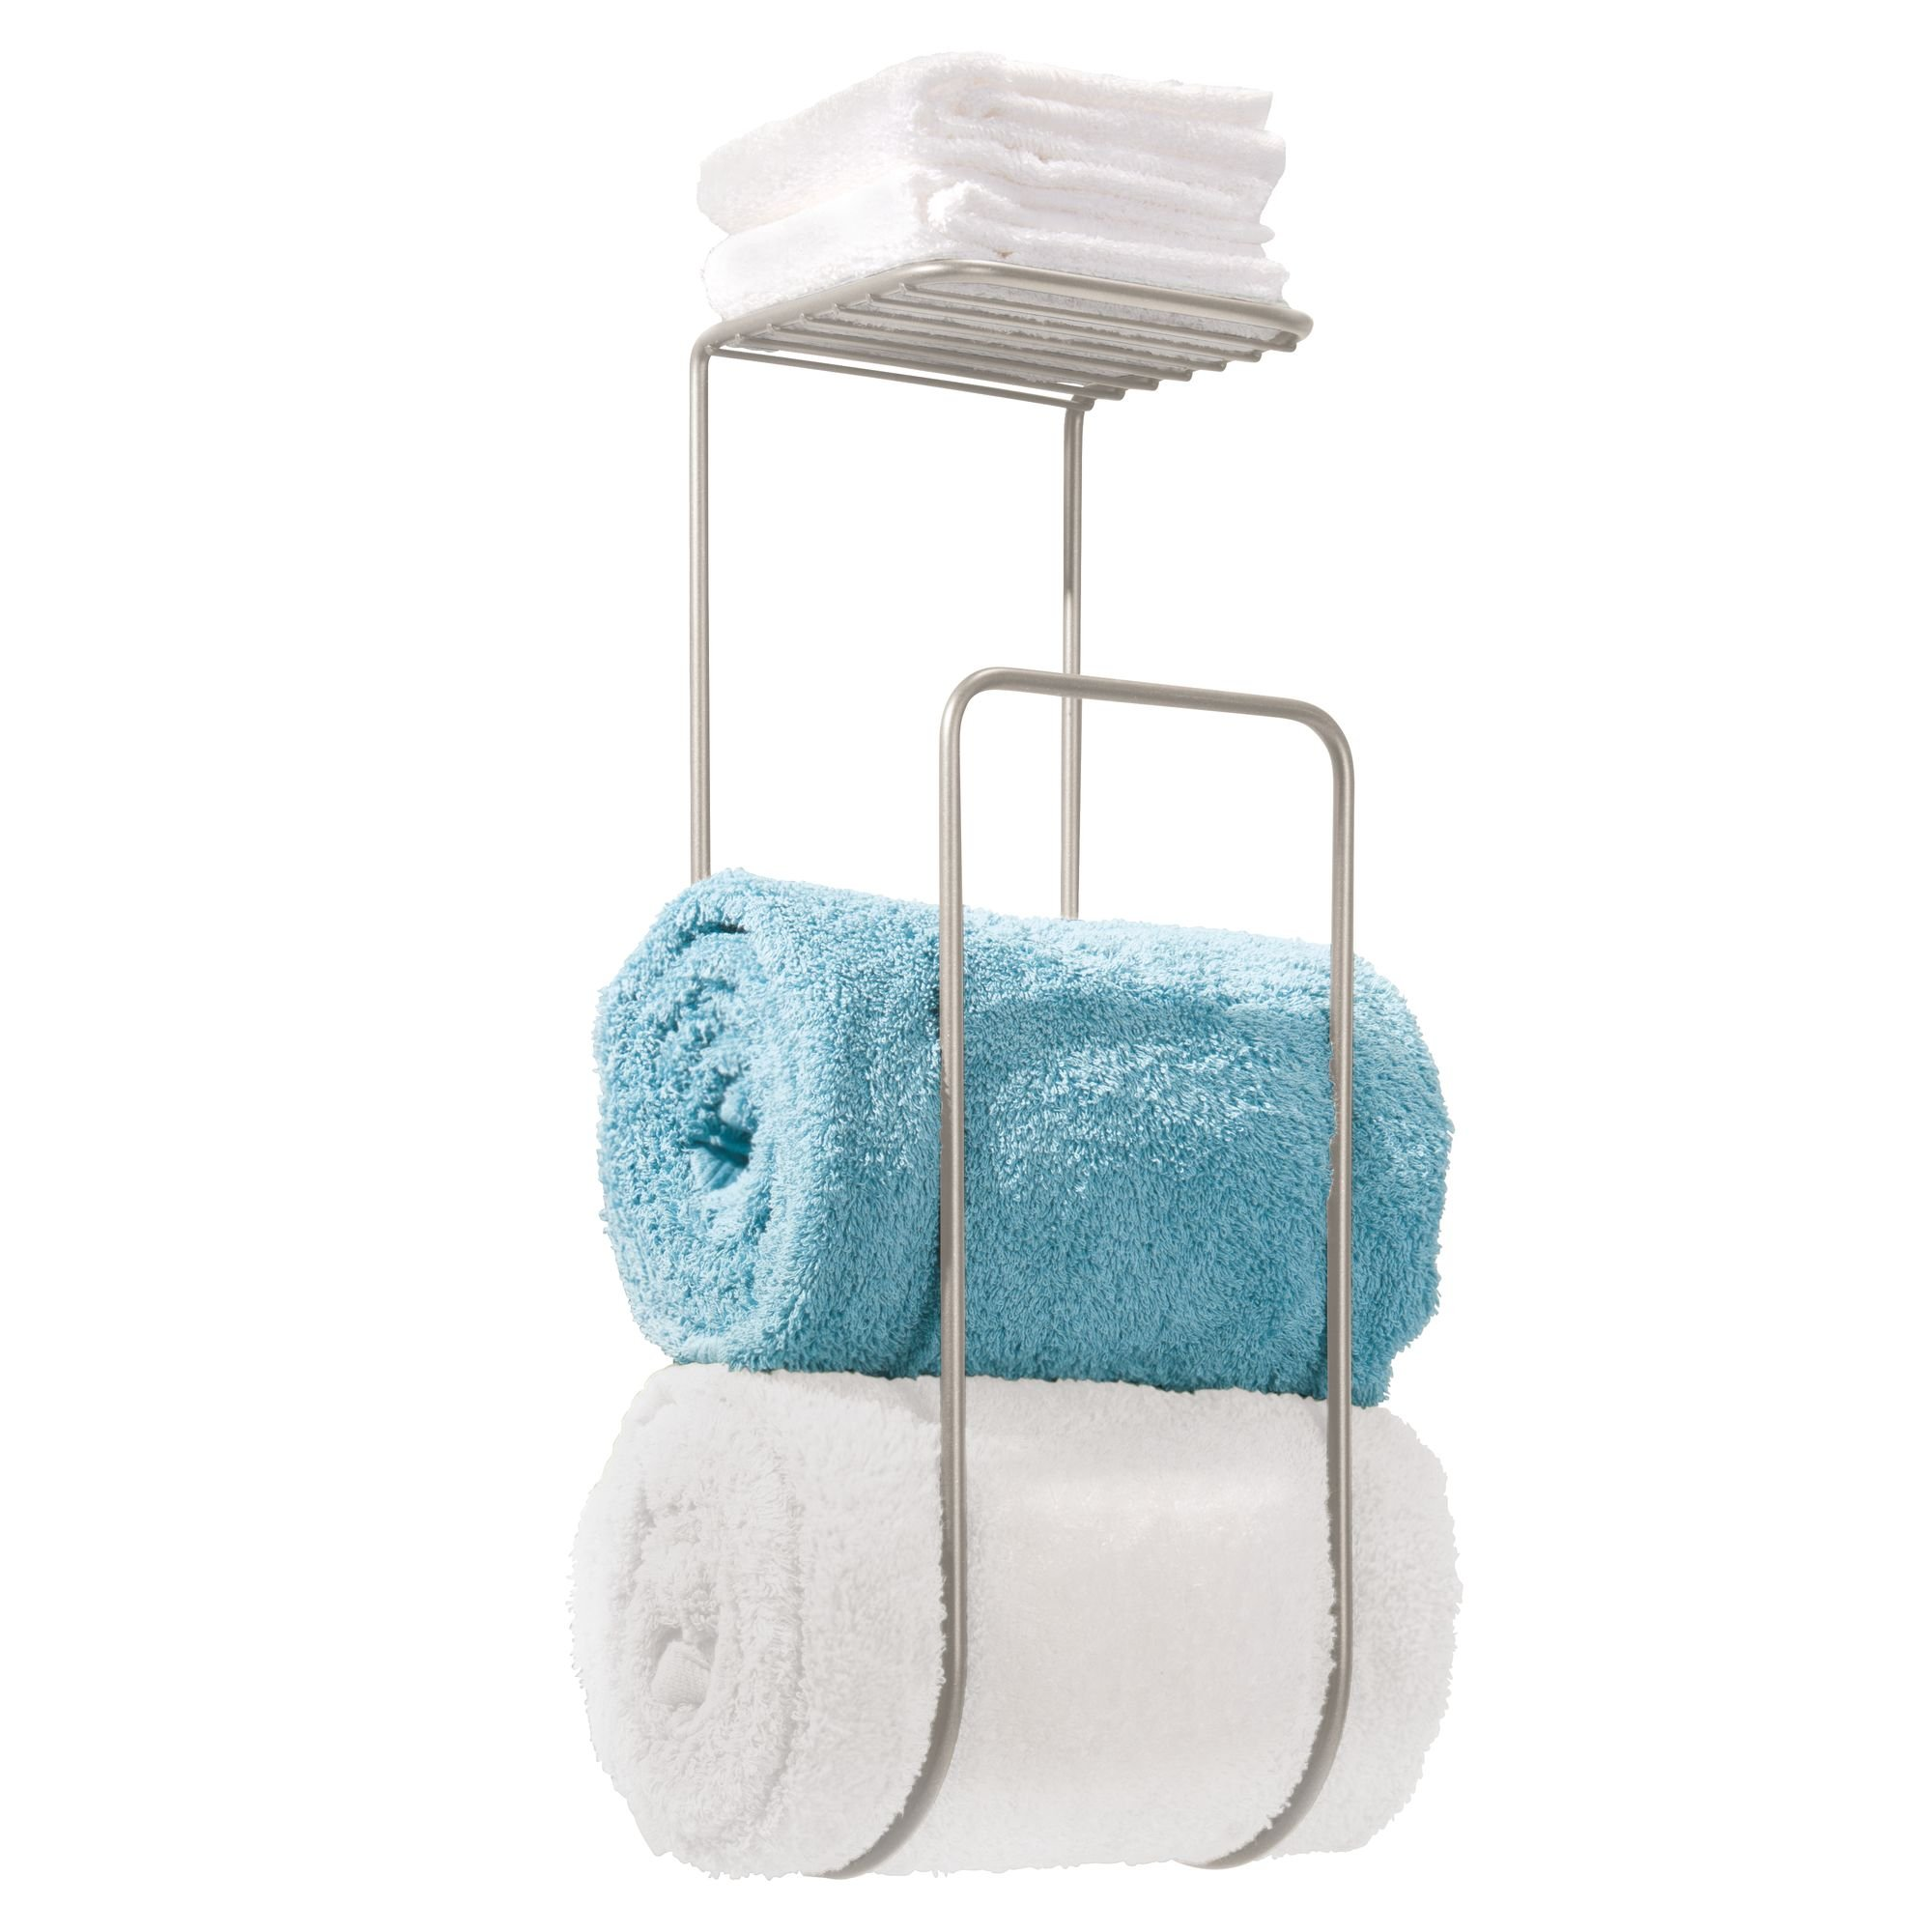 NEW Towel Holder Wall Mount Storage Washcloths Rolled With Shelf ...